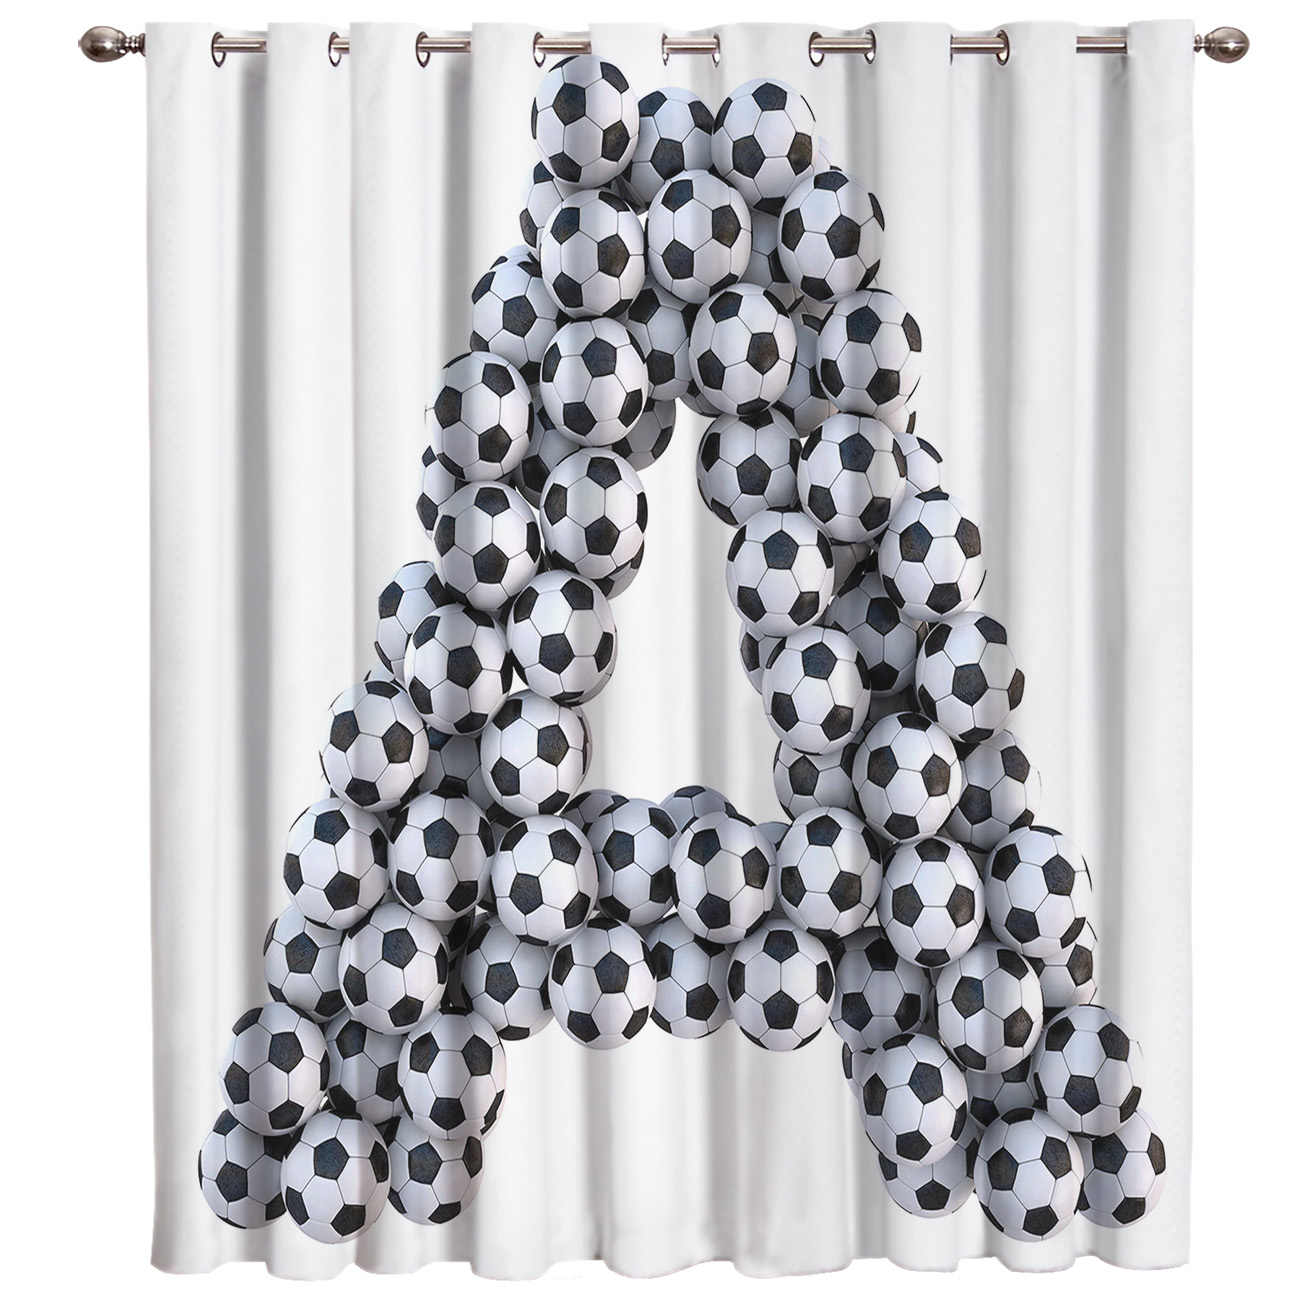 Letter A Shape Soccer Football Text Window Treatments Curtains Valance Room Curtains Large Window Bathroom Kitchen Bedroom Decor